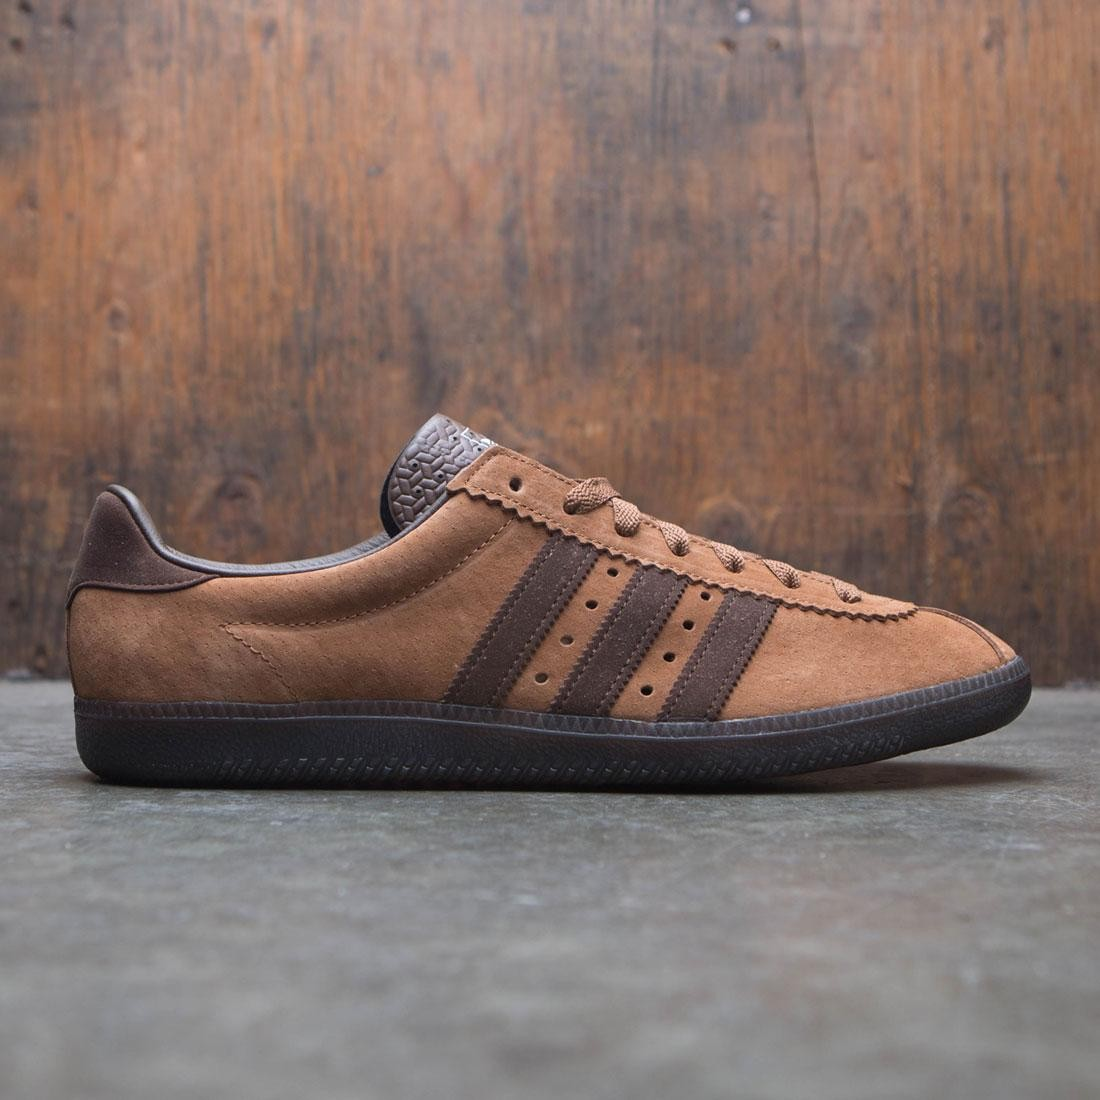 【海外限定】アディダス カーゴ 靴 スニーカー 【 ADIDAS MEN PADIHAM SPZL BROWN TIMBER DUST CARGO GUM 】